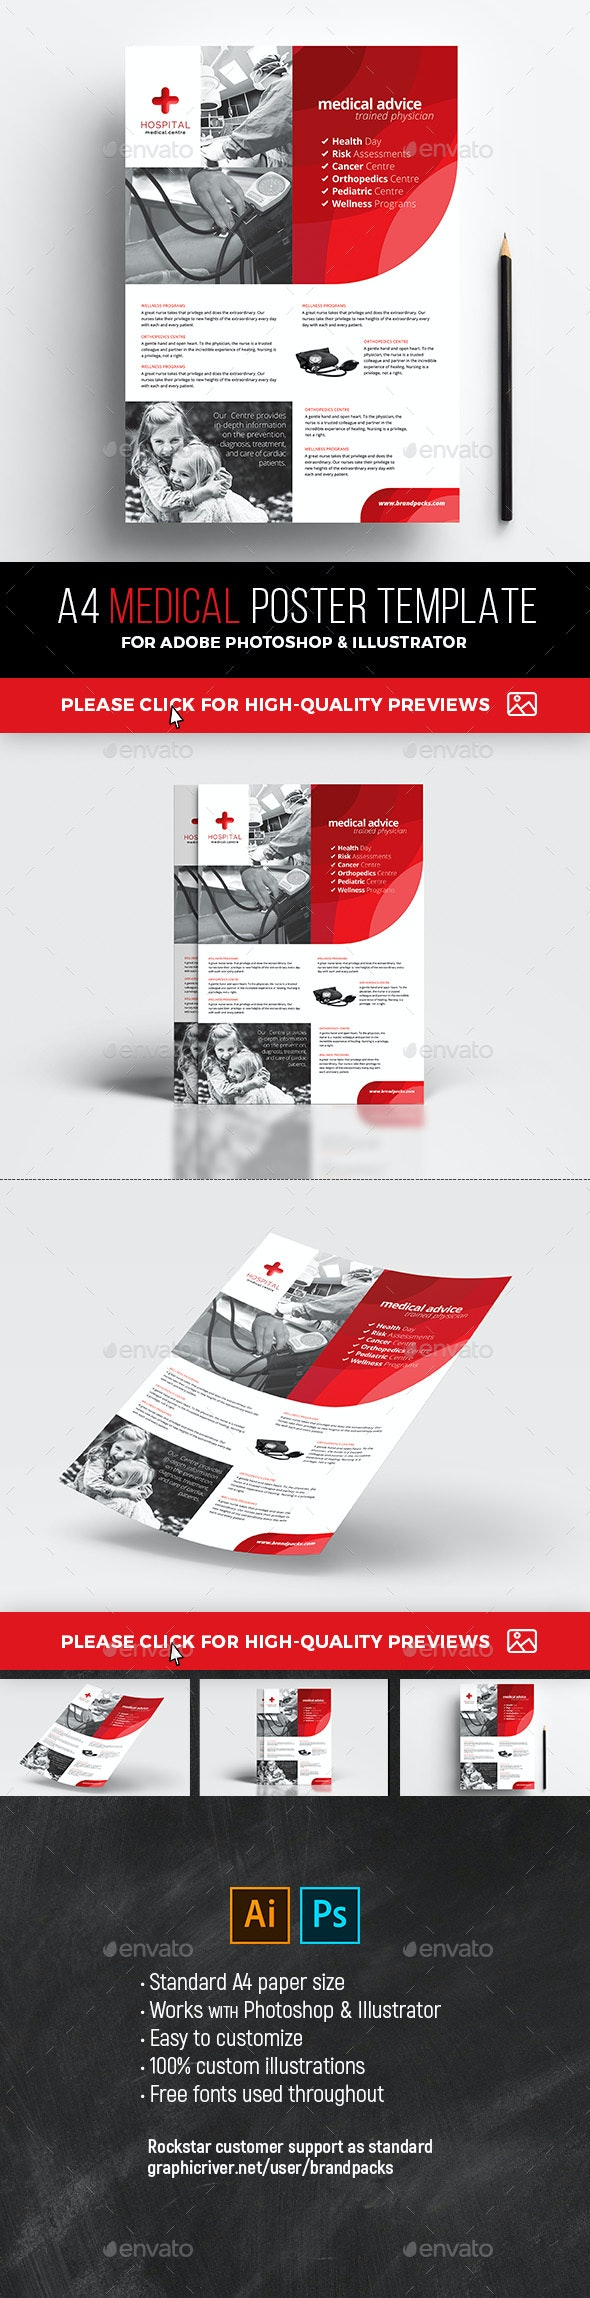 A4 Medical Poster Template - Corporate Flyers